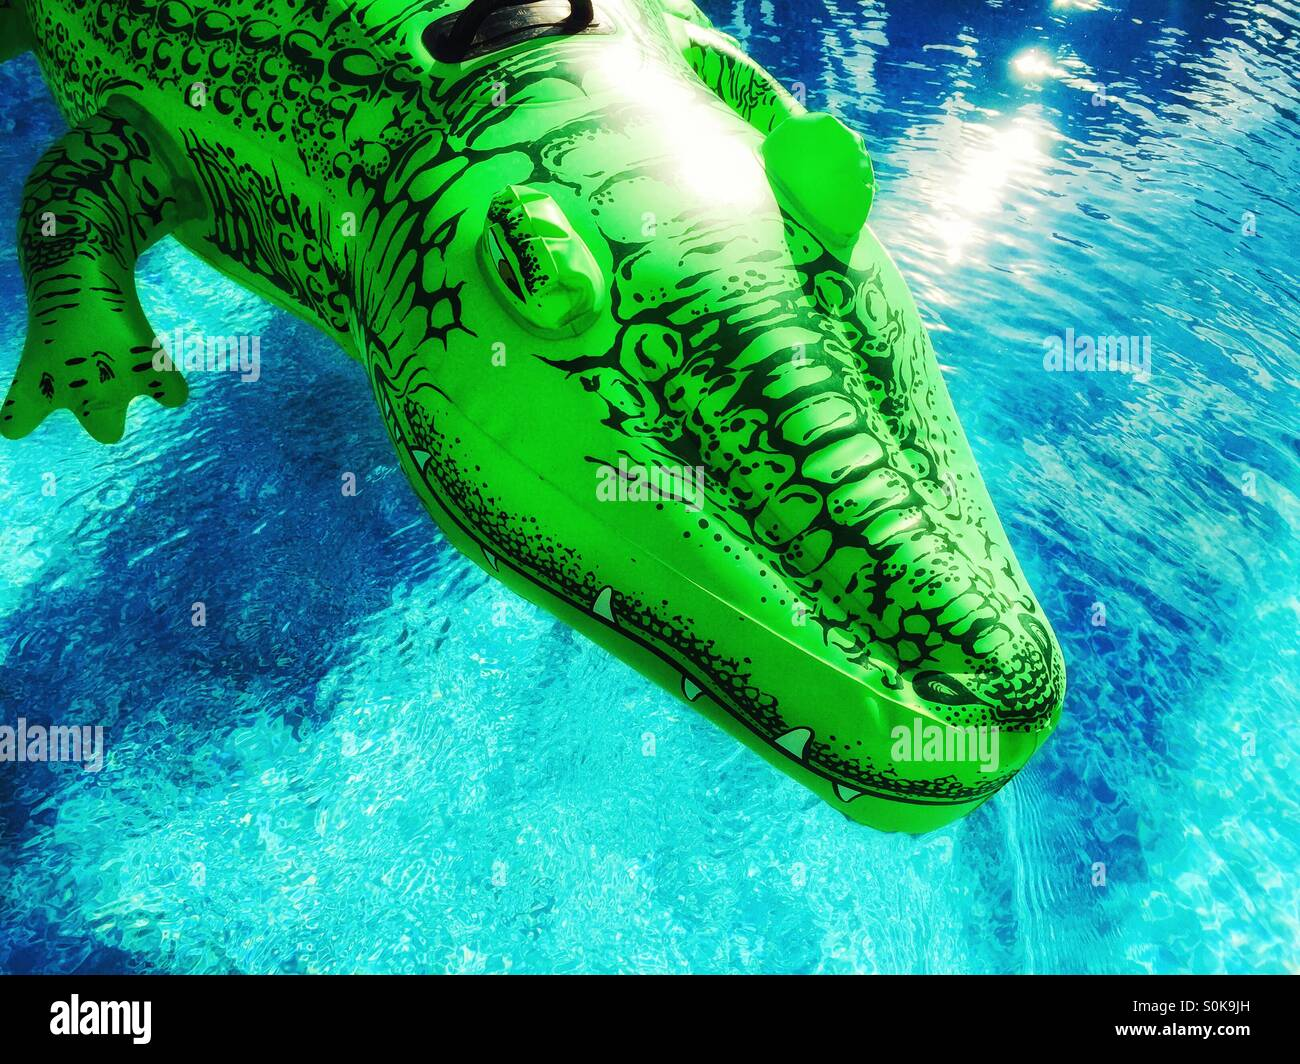 Green Inflatable Alligator Toy Floating On Blue Water.